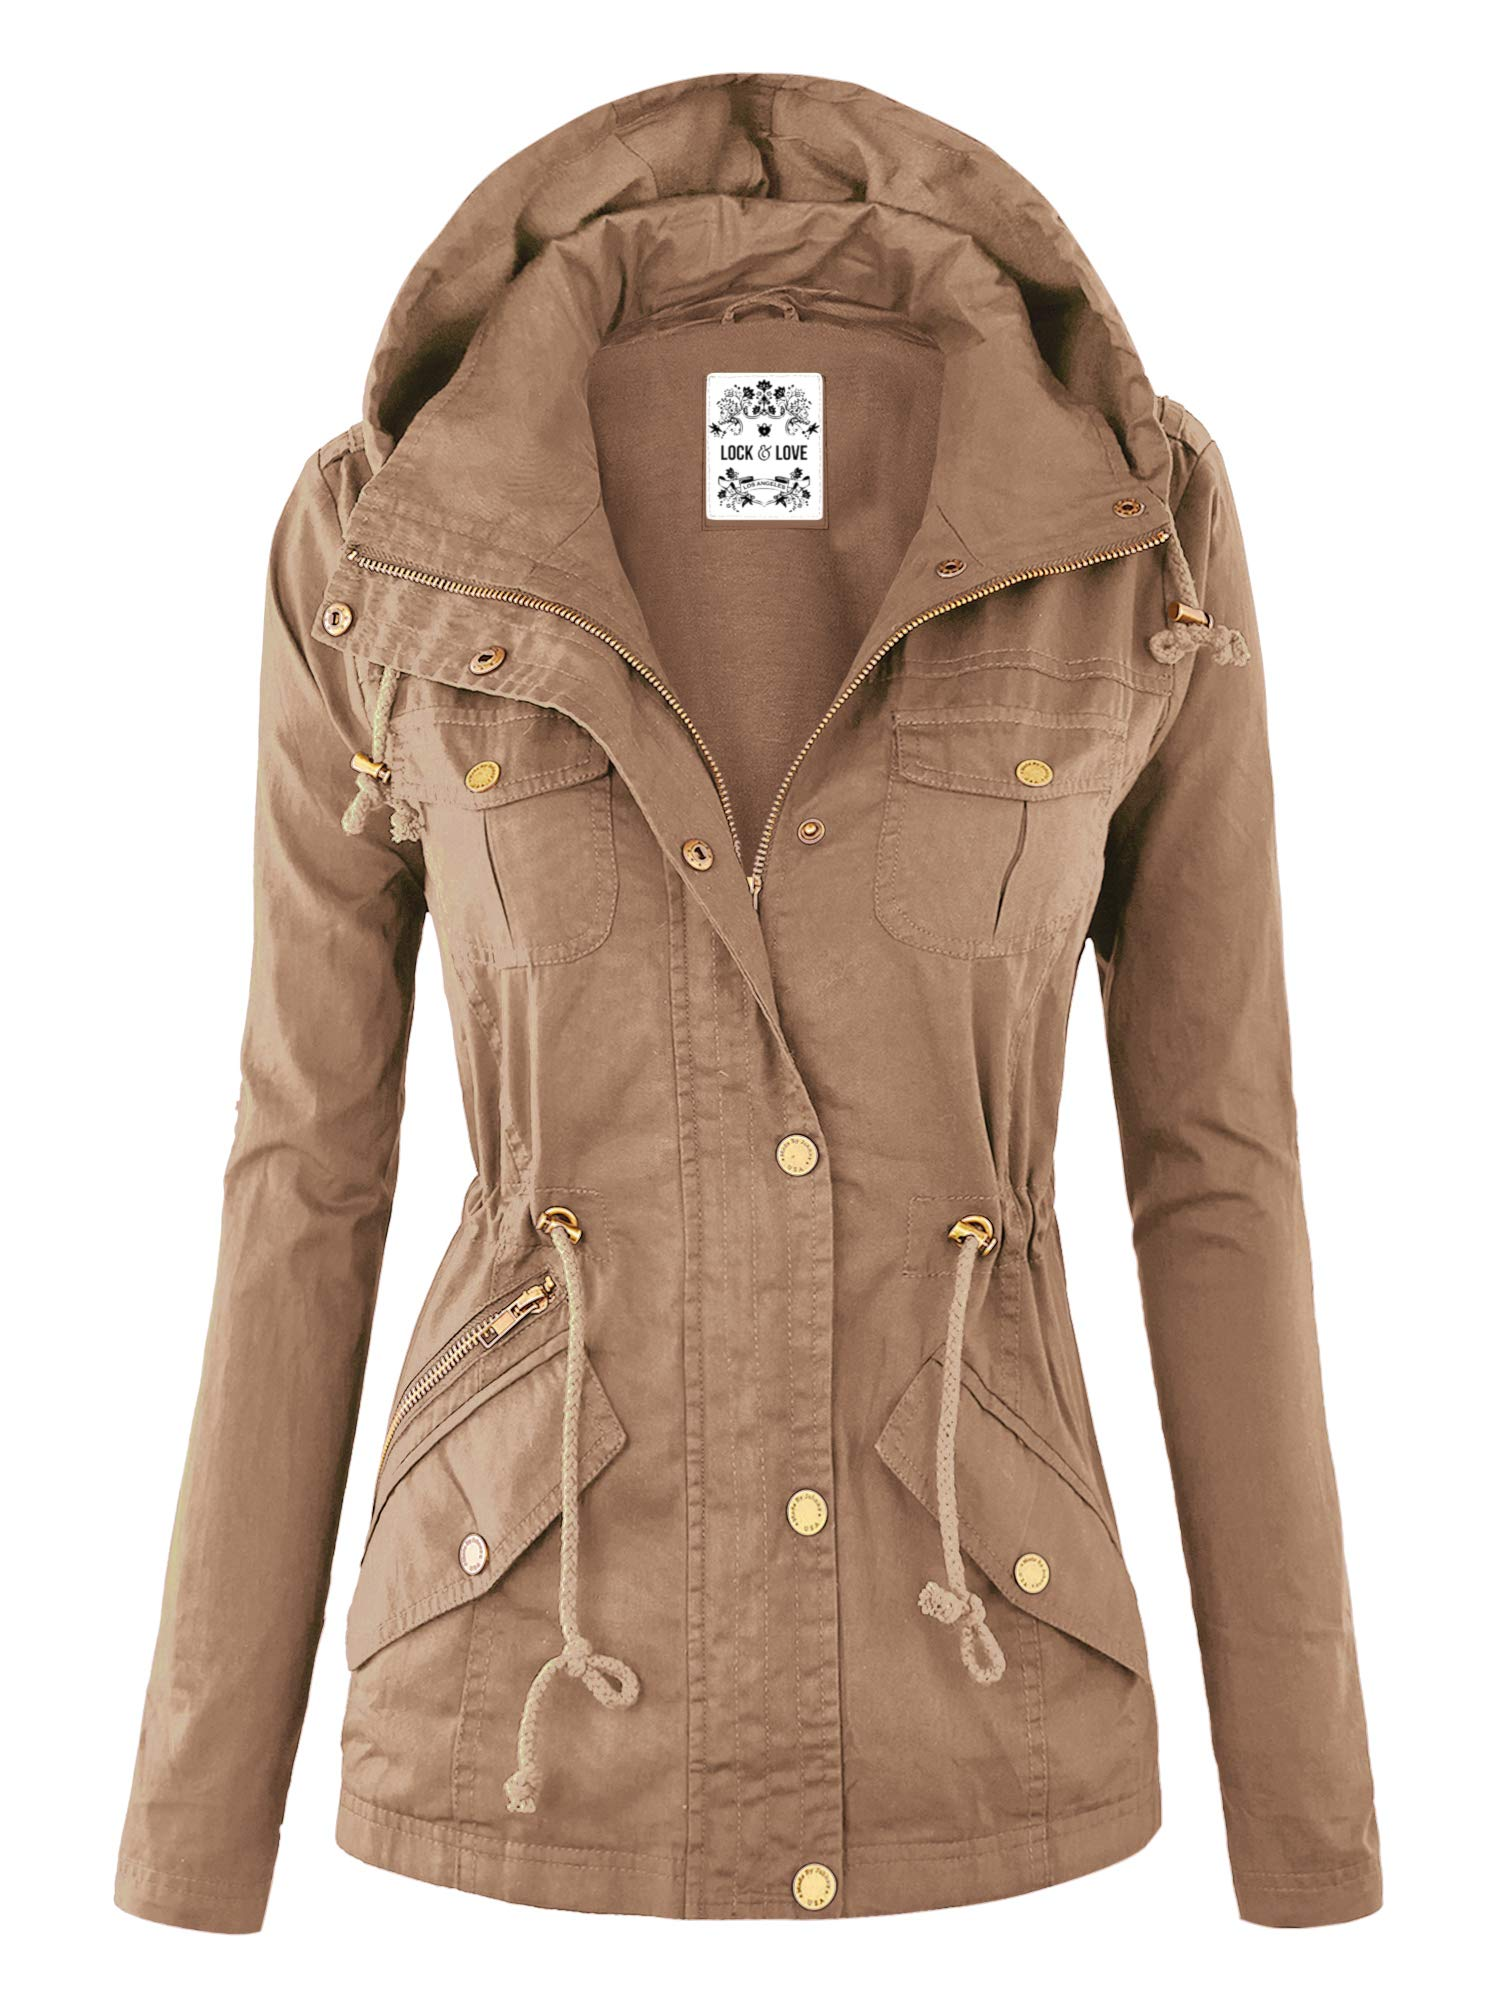 Lock and Love WJC643 Womens Pop of Color Parka Jacket S Khaki by Lock and Love